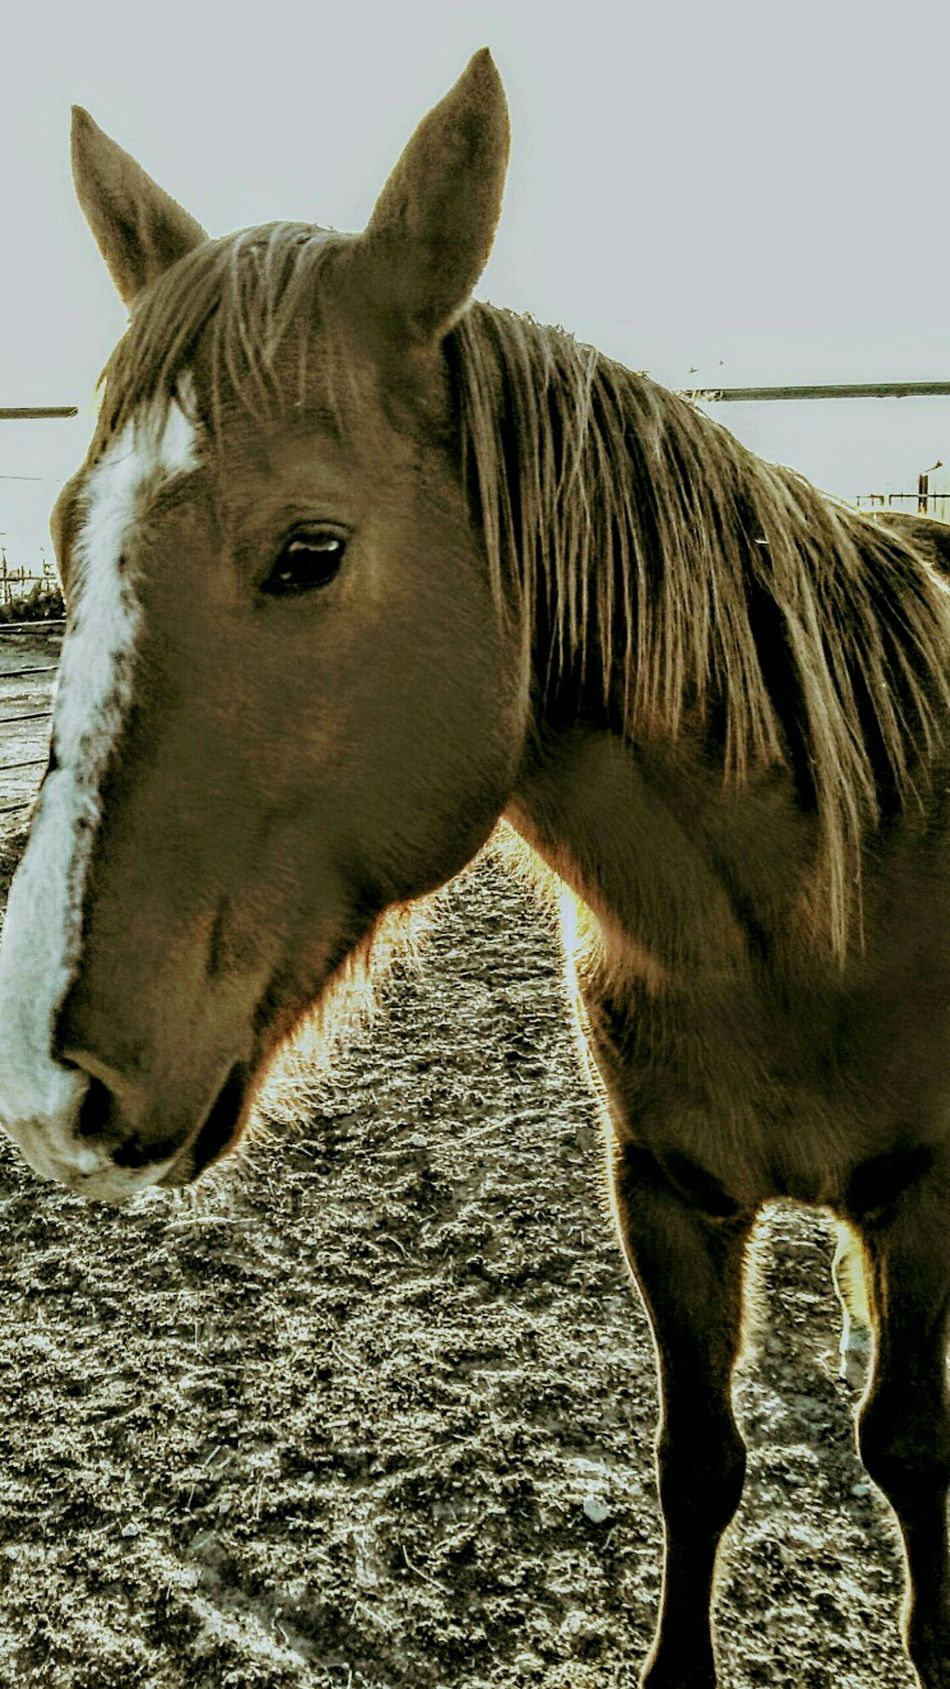 Ranch horses Animal Themes Domestic Animals One Animal Horse Animal Head  Close-up Mammal Livestock Day Working Animal Outdoors No People Nature Sky Silhouette Country Living Ranch Barn Ranch Life Farm Cowboy Country Life Mane Sunlight Stable